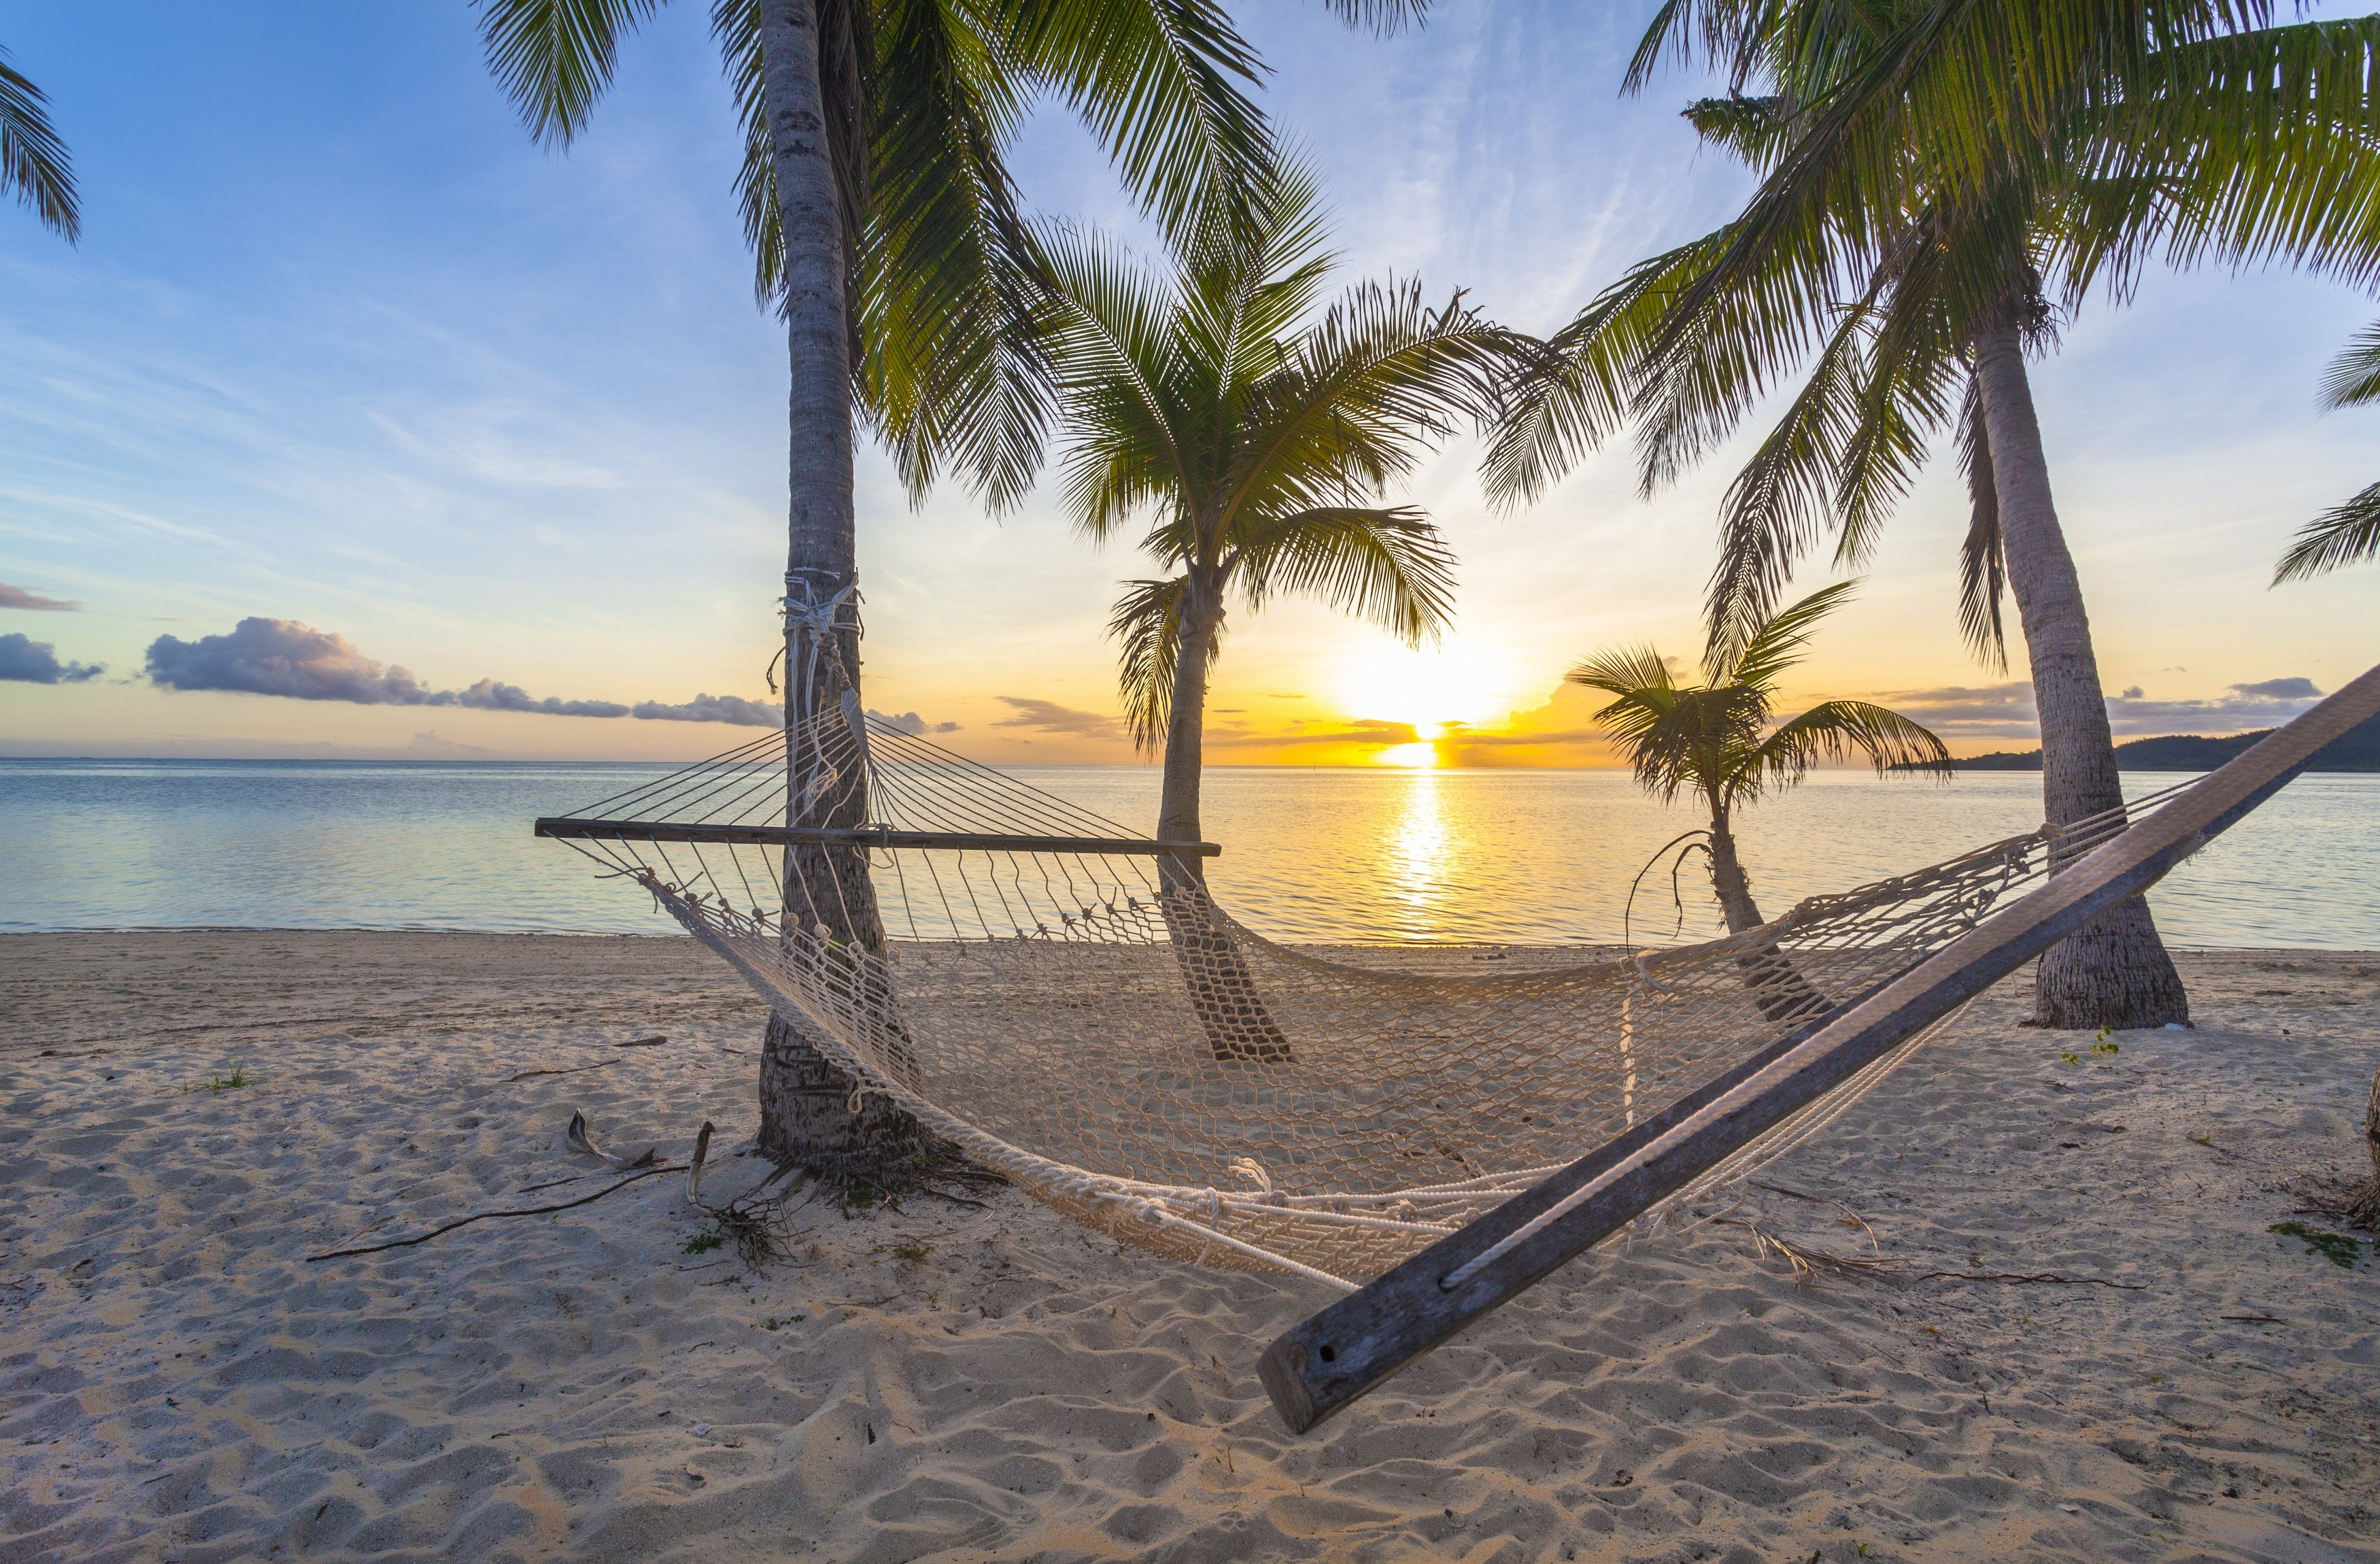 Hammock Full HD Wallpaper And Background Image